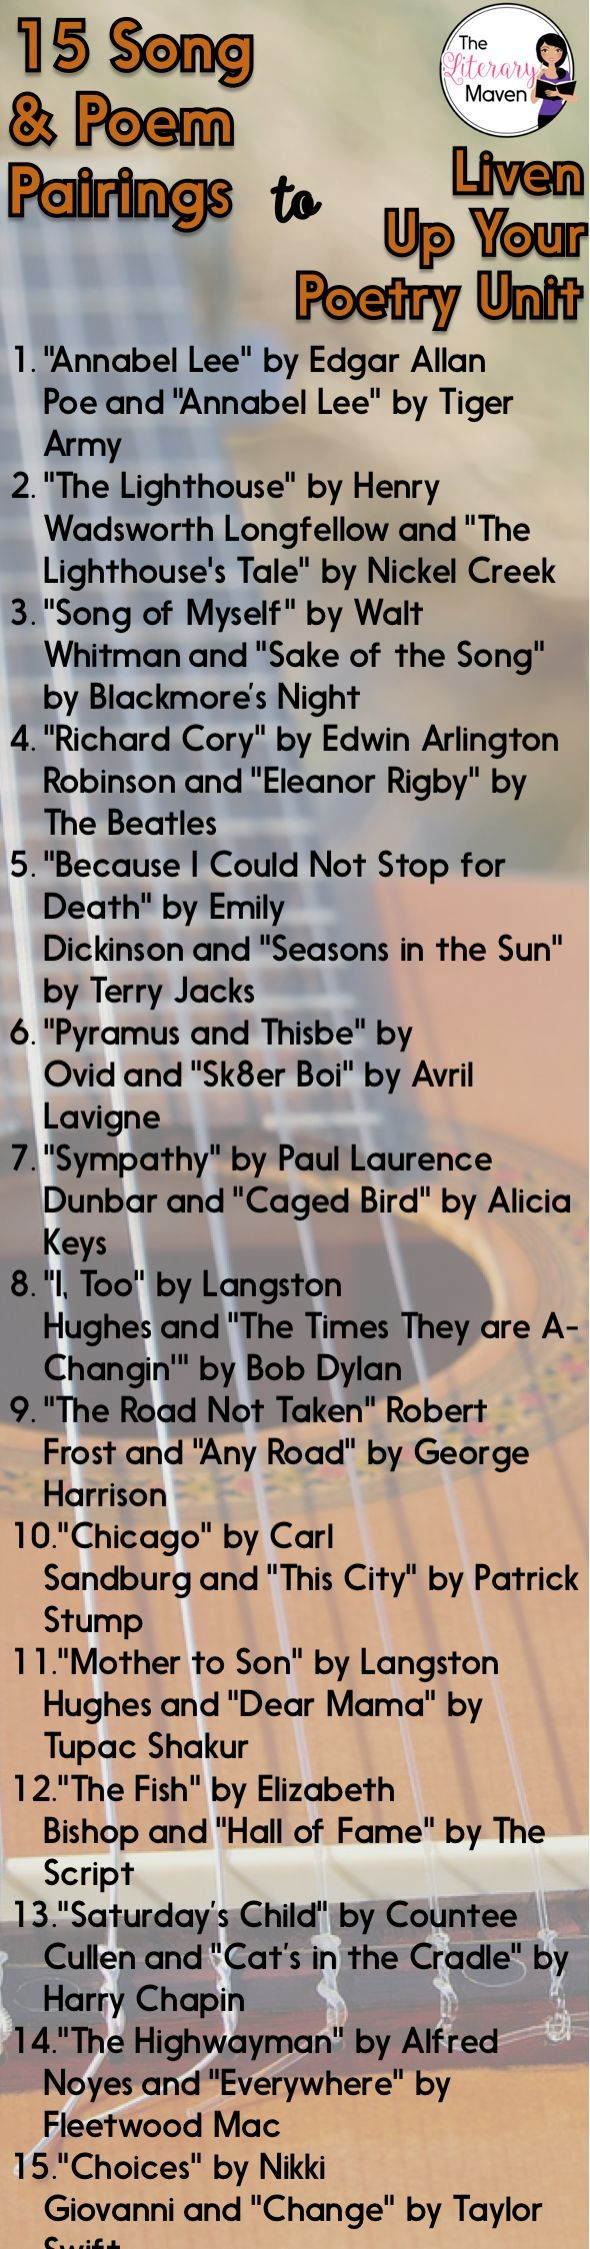 15 Poem and Song Pairings to Liven